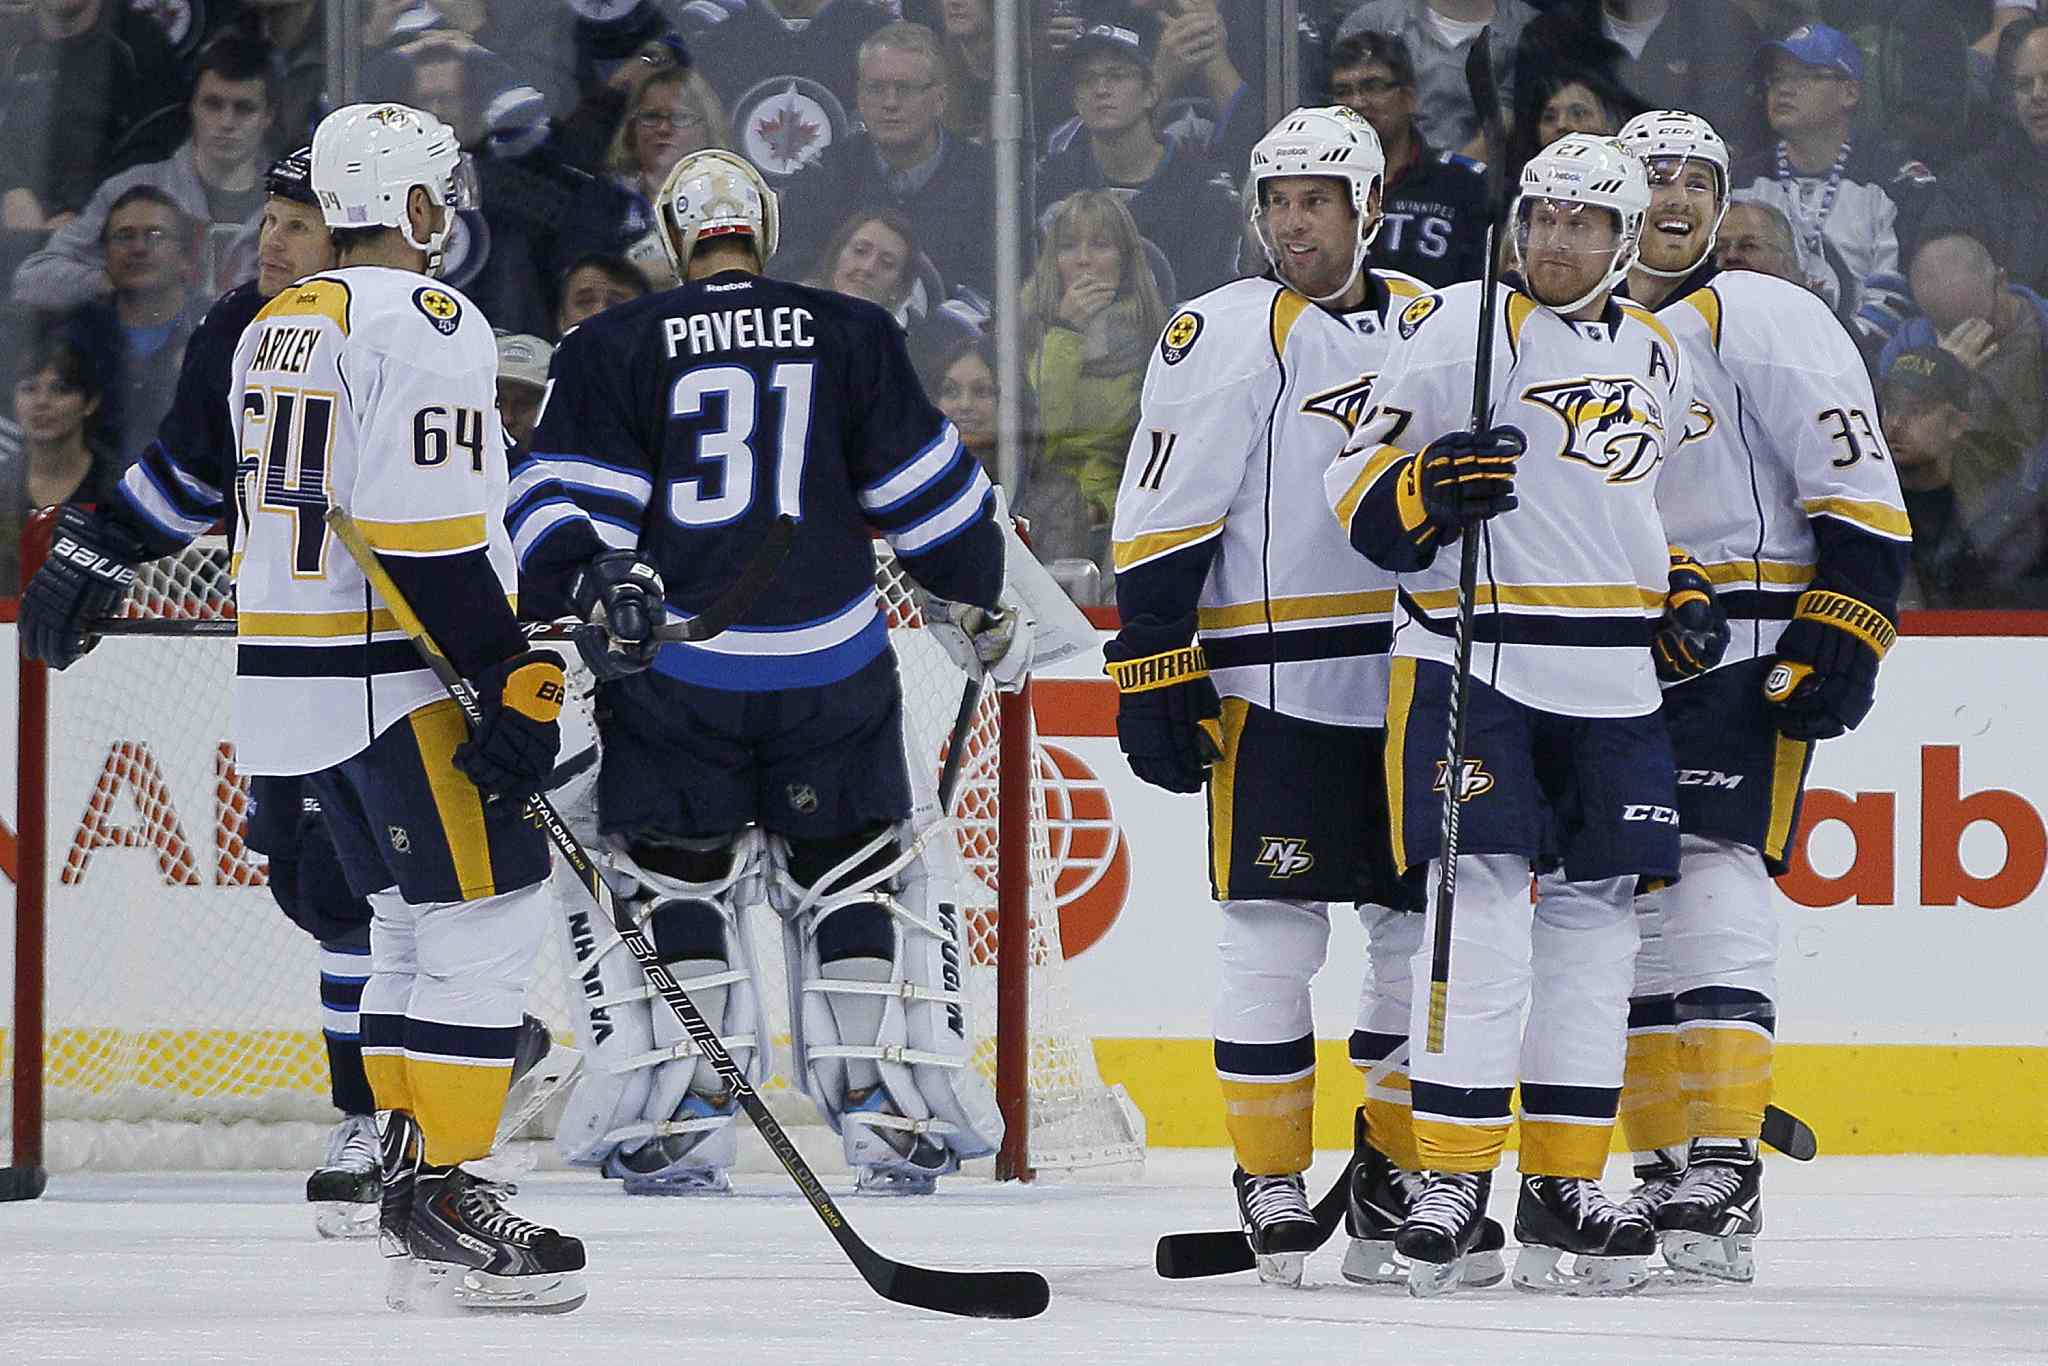 Nashville Predators celebrate Patric Hornqvist's (27) goal on Winnipeg Jets goaltender Ondrej Pavelec (31) during the second period.